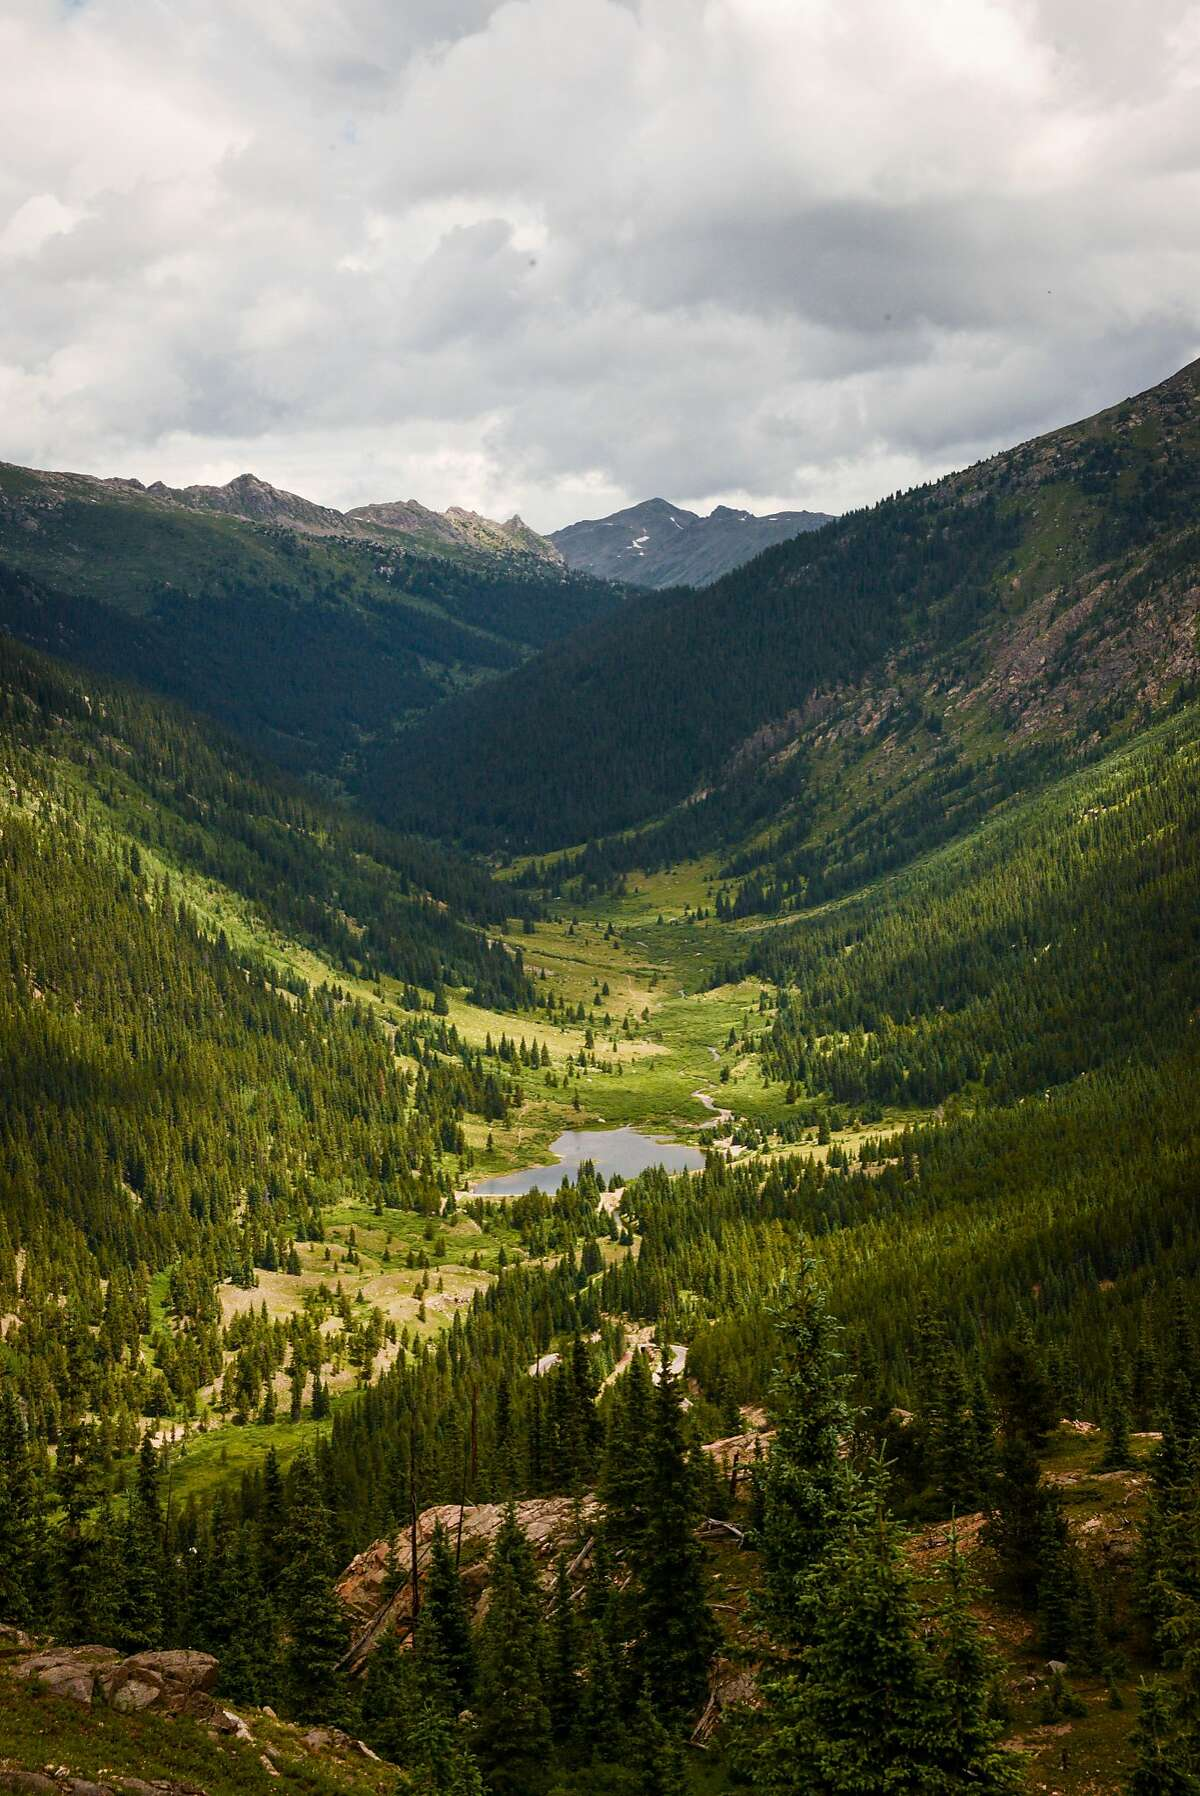 The challenge and enjoyment of trail is part of the allure to hikers on a high-altitude vacation.